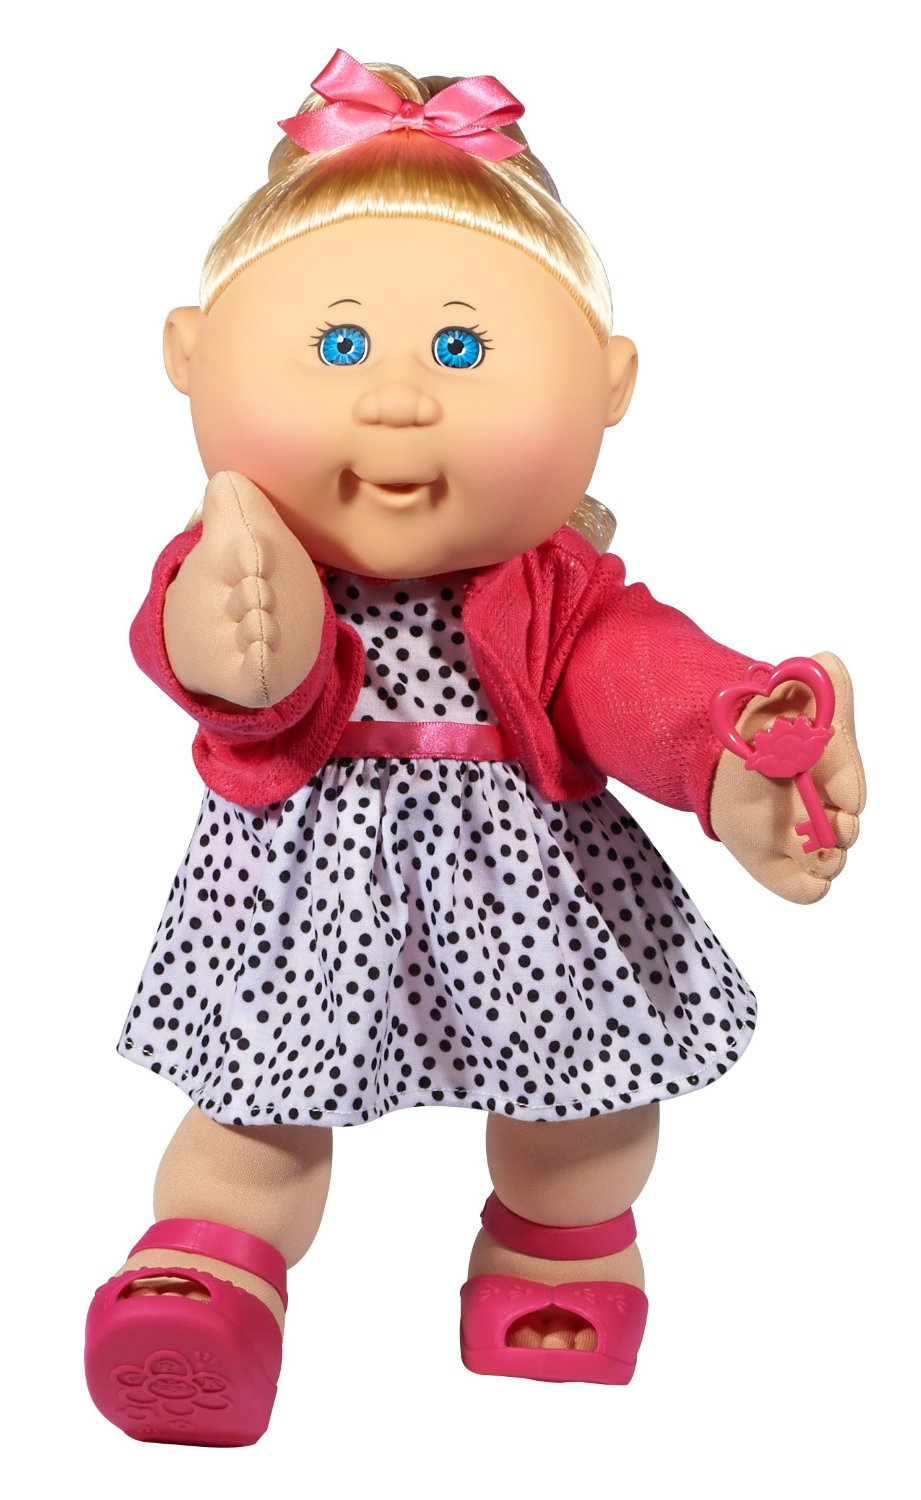 cabbage patch kids trendy doll blonde hair blue eye